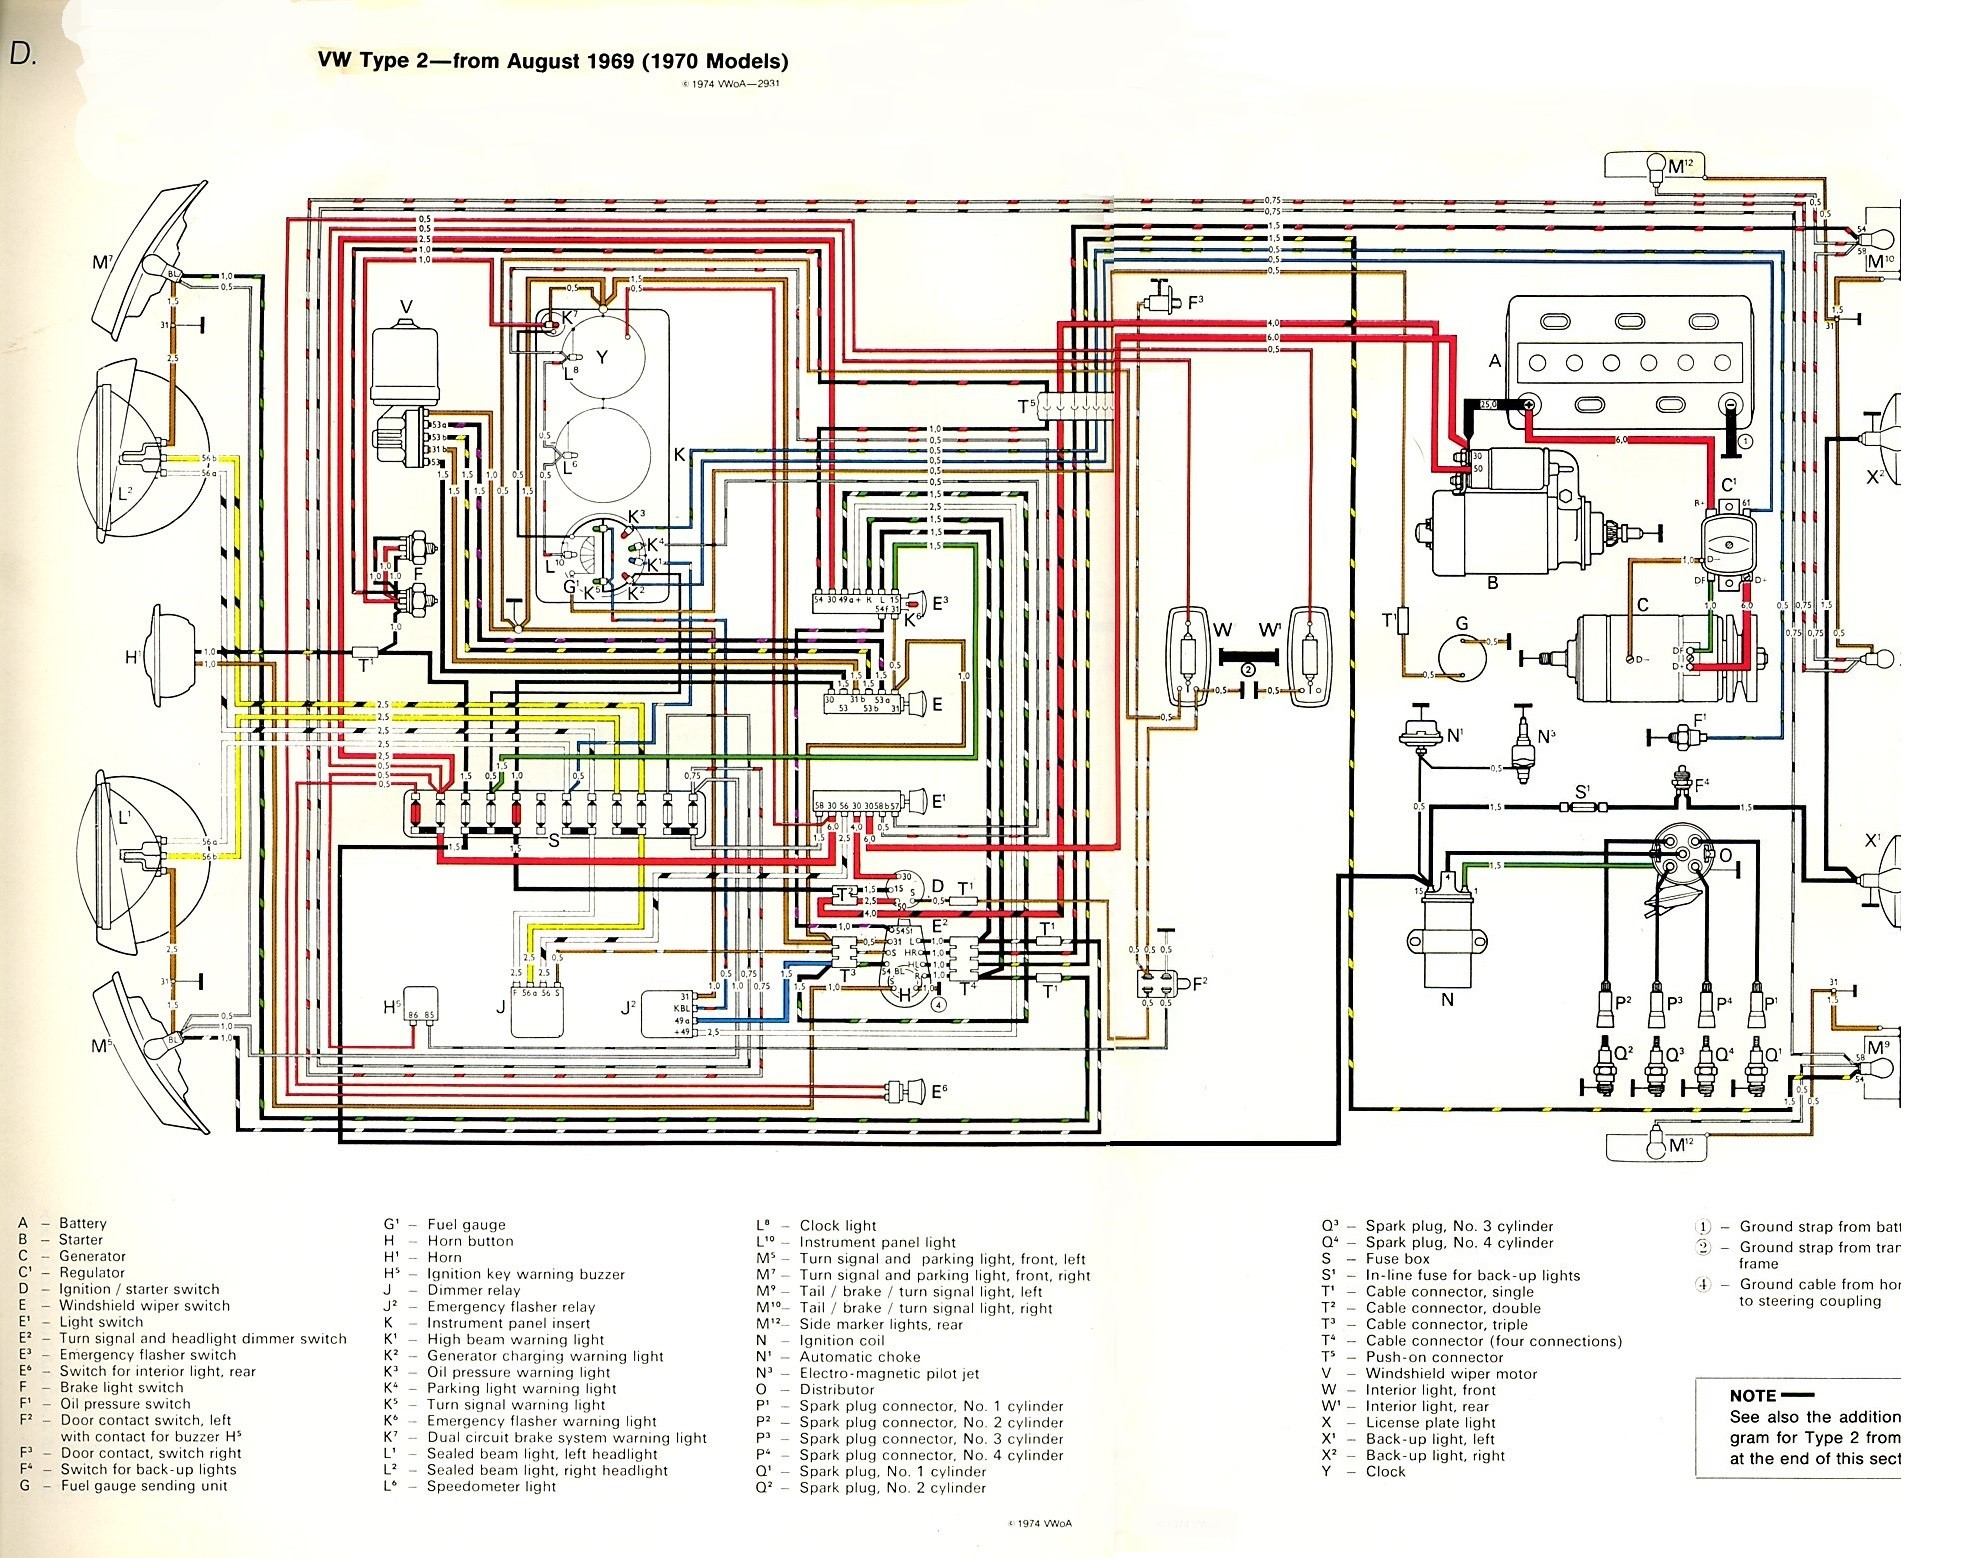 1970 karmann ghia wiring diagram free download electrical work rh wiringdiagramshop today